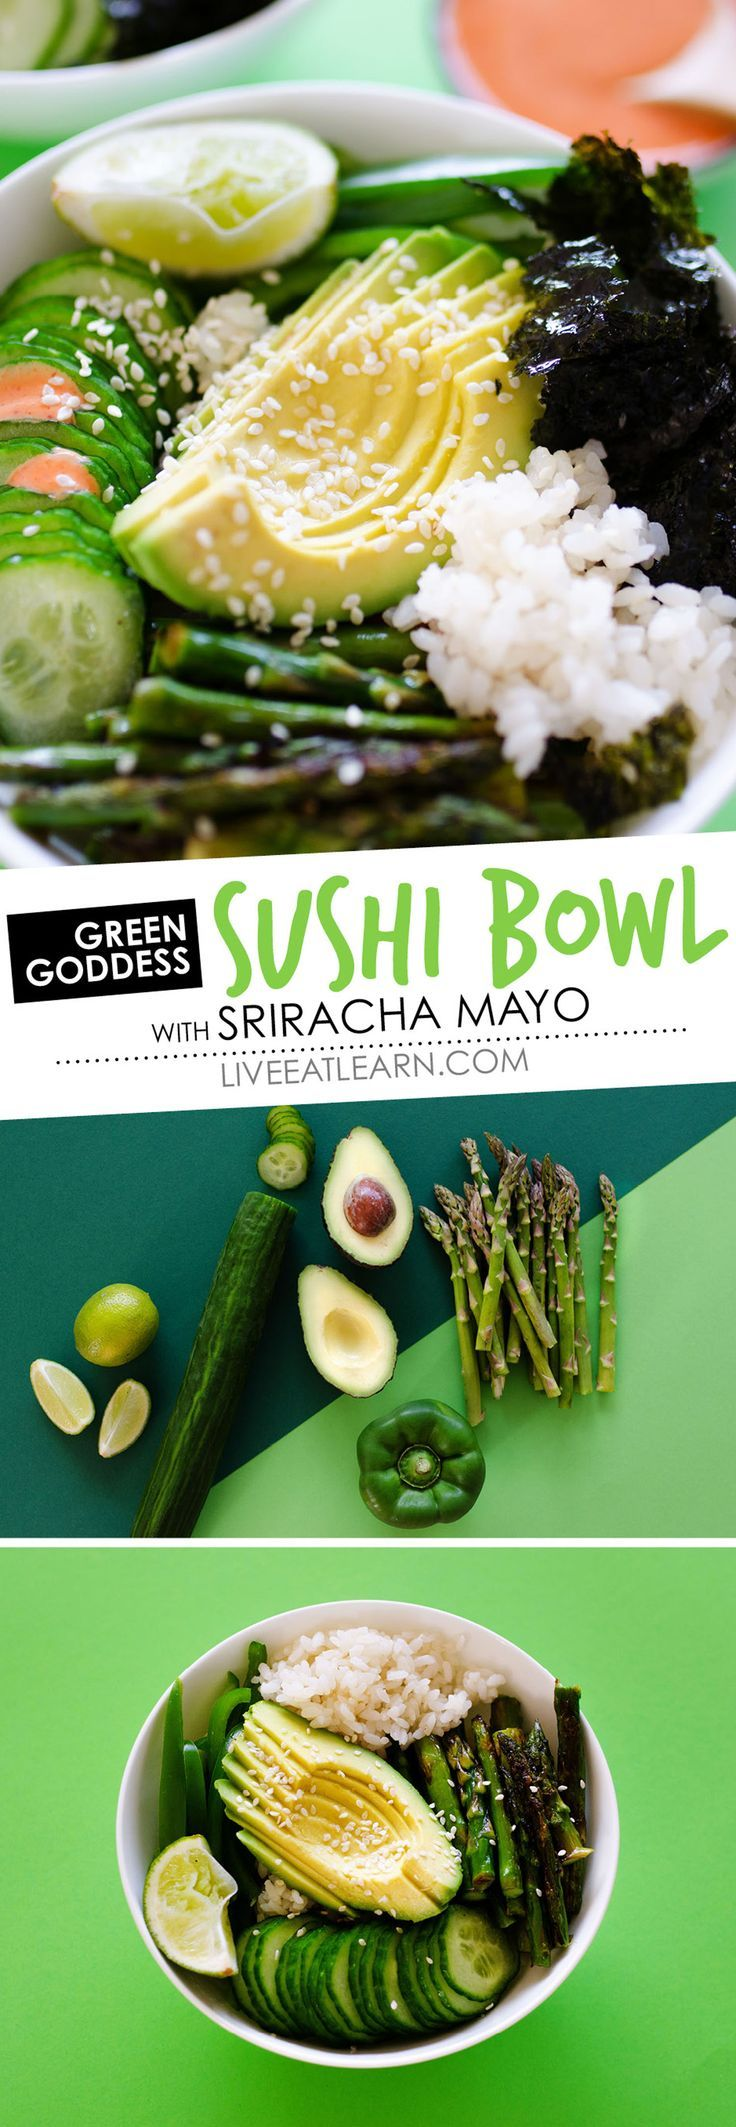 This healthy Green Goddess Sushi Bowl recipe takes everything good about vegetarian sushi and turns it into a hassle-free, mouth-wateringly delicious bowl. The perfect vegan and gluten-free meal thats fast, easy, and full of flavor! Perfect for the whole family. // Live Eat Learn